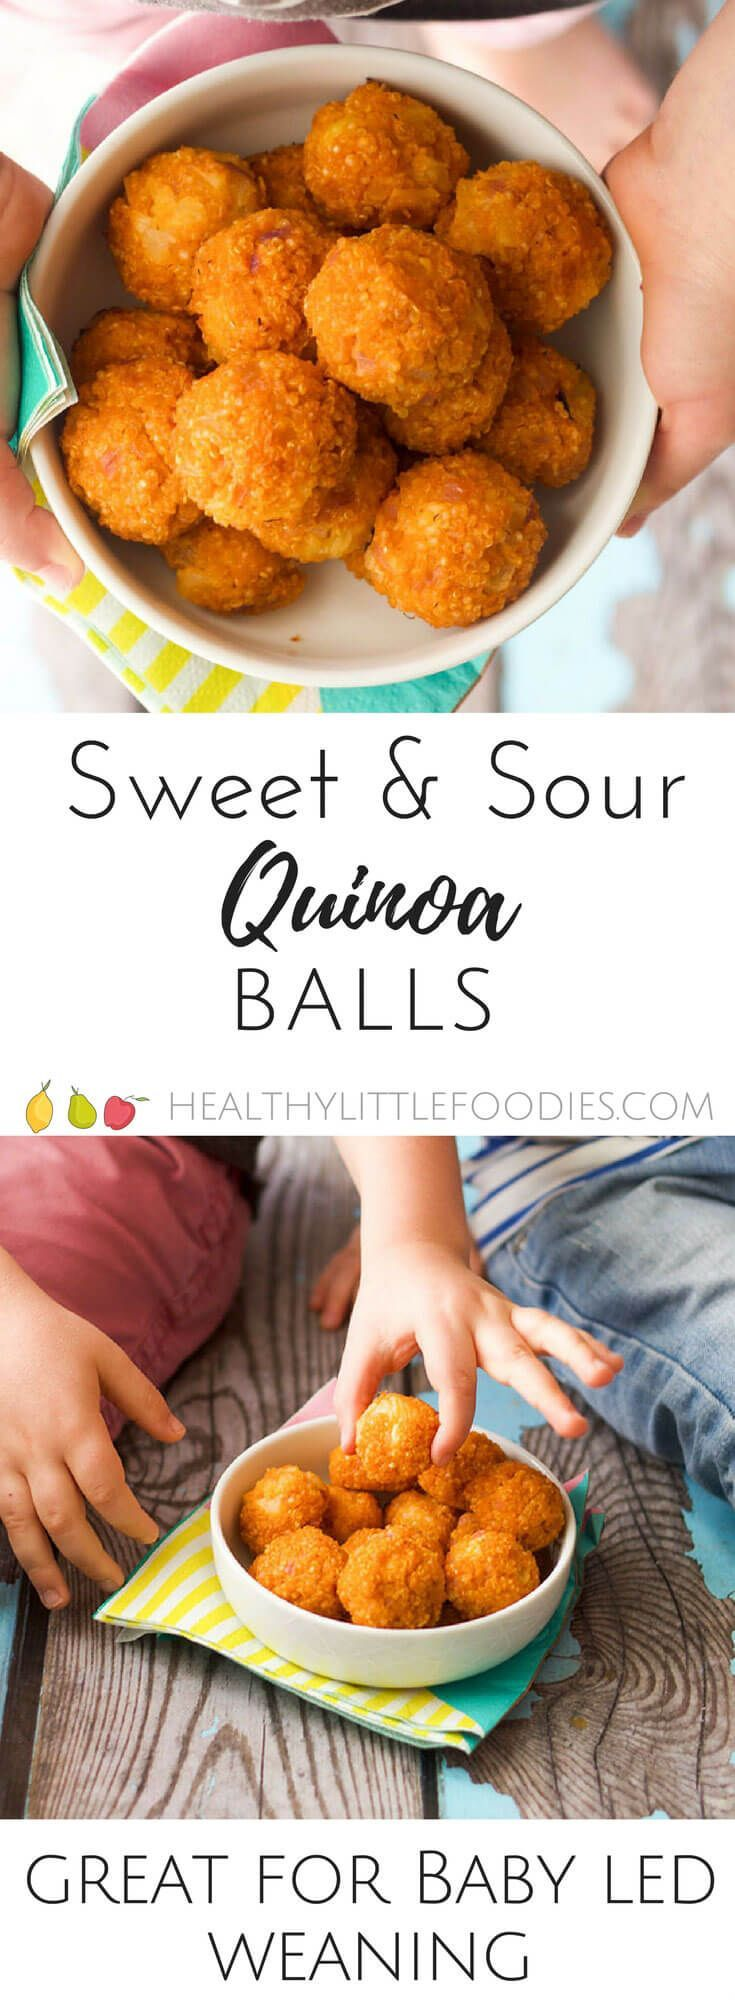 sweet and sour quinoa balls. Perfect for a lunch box, finger food or as mart of a main meal. Great for kids and for baby-led weaning (blw) via @hlittlefoodies